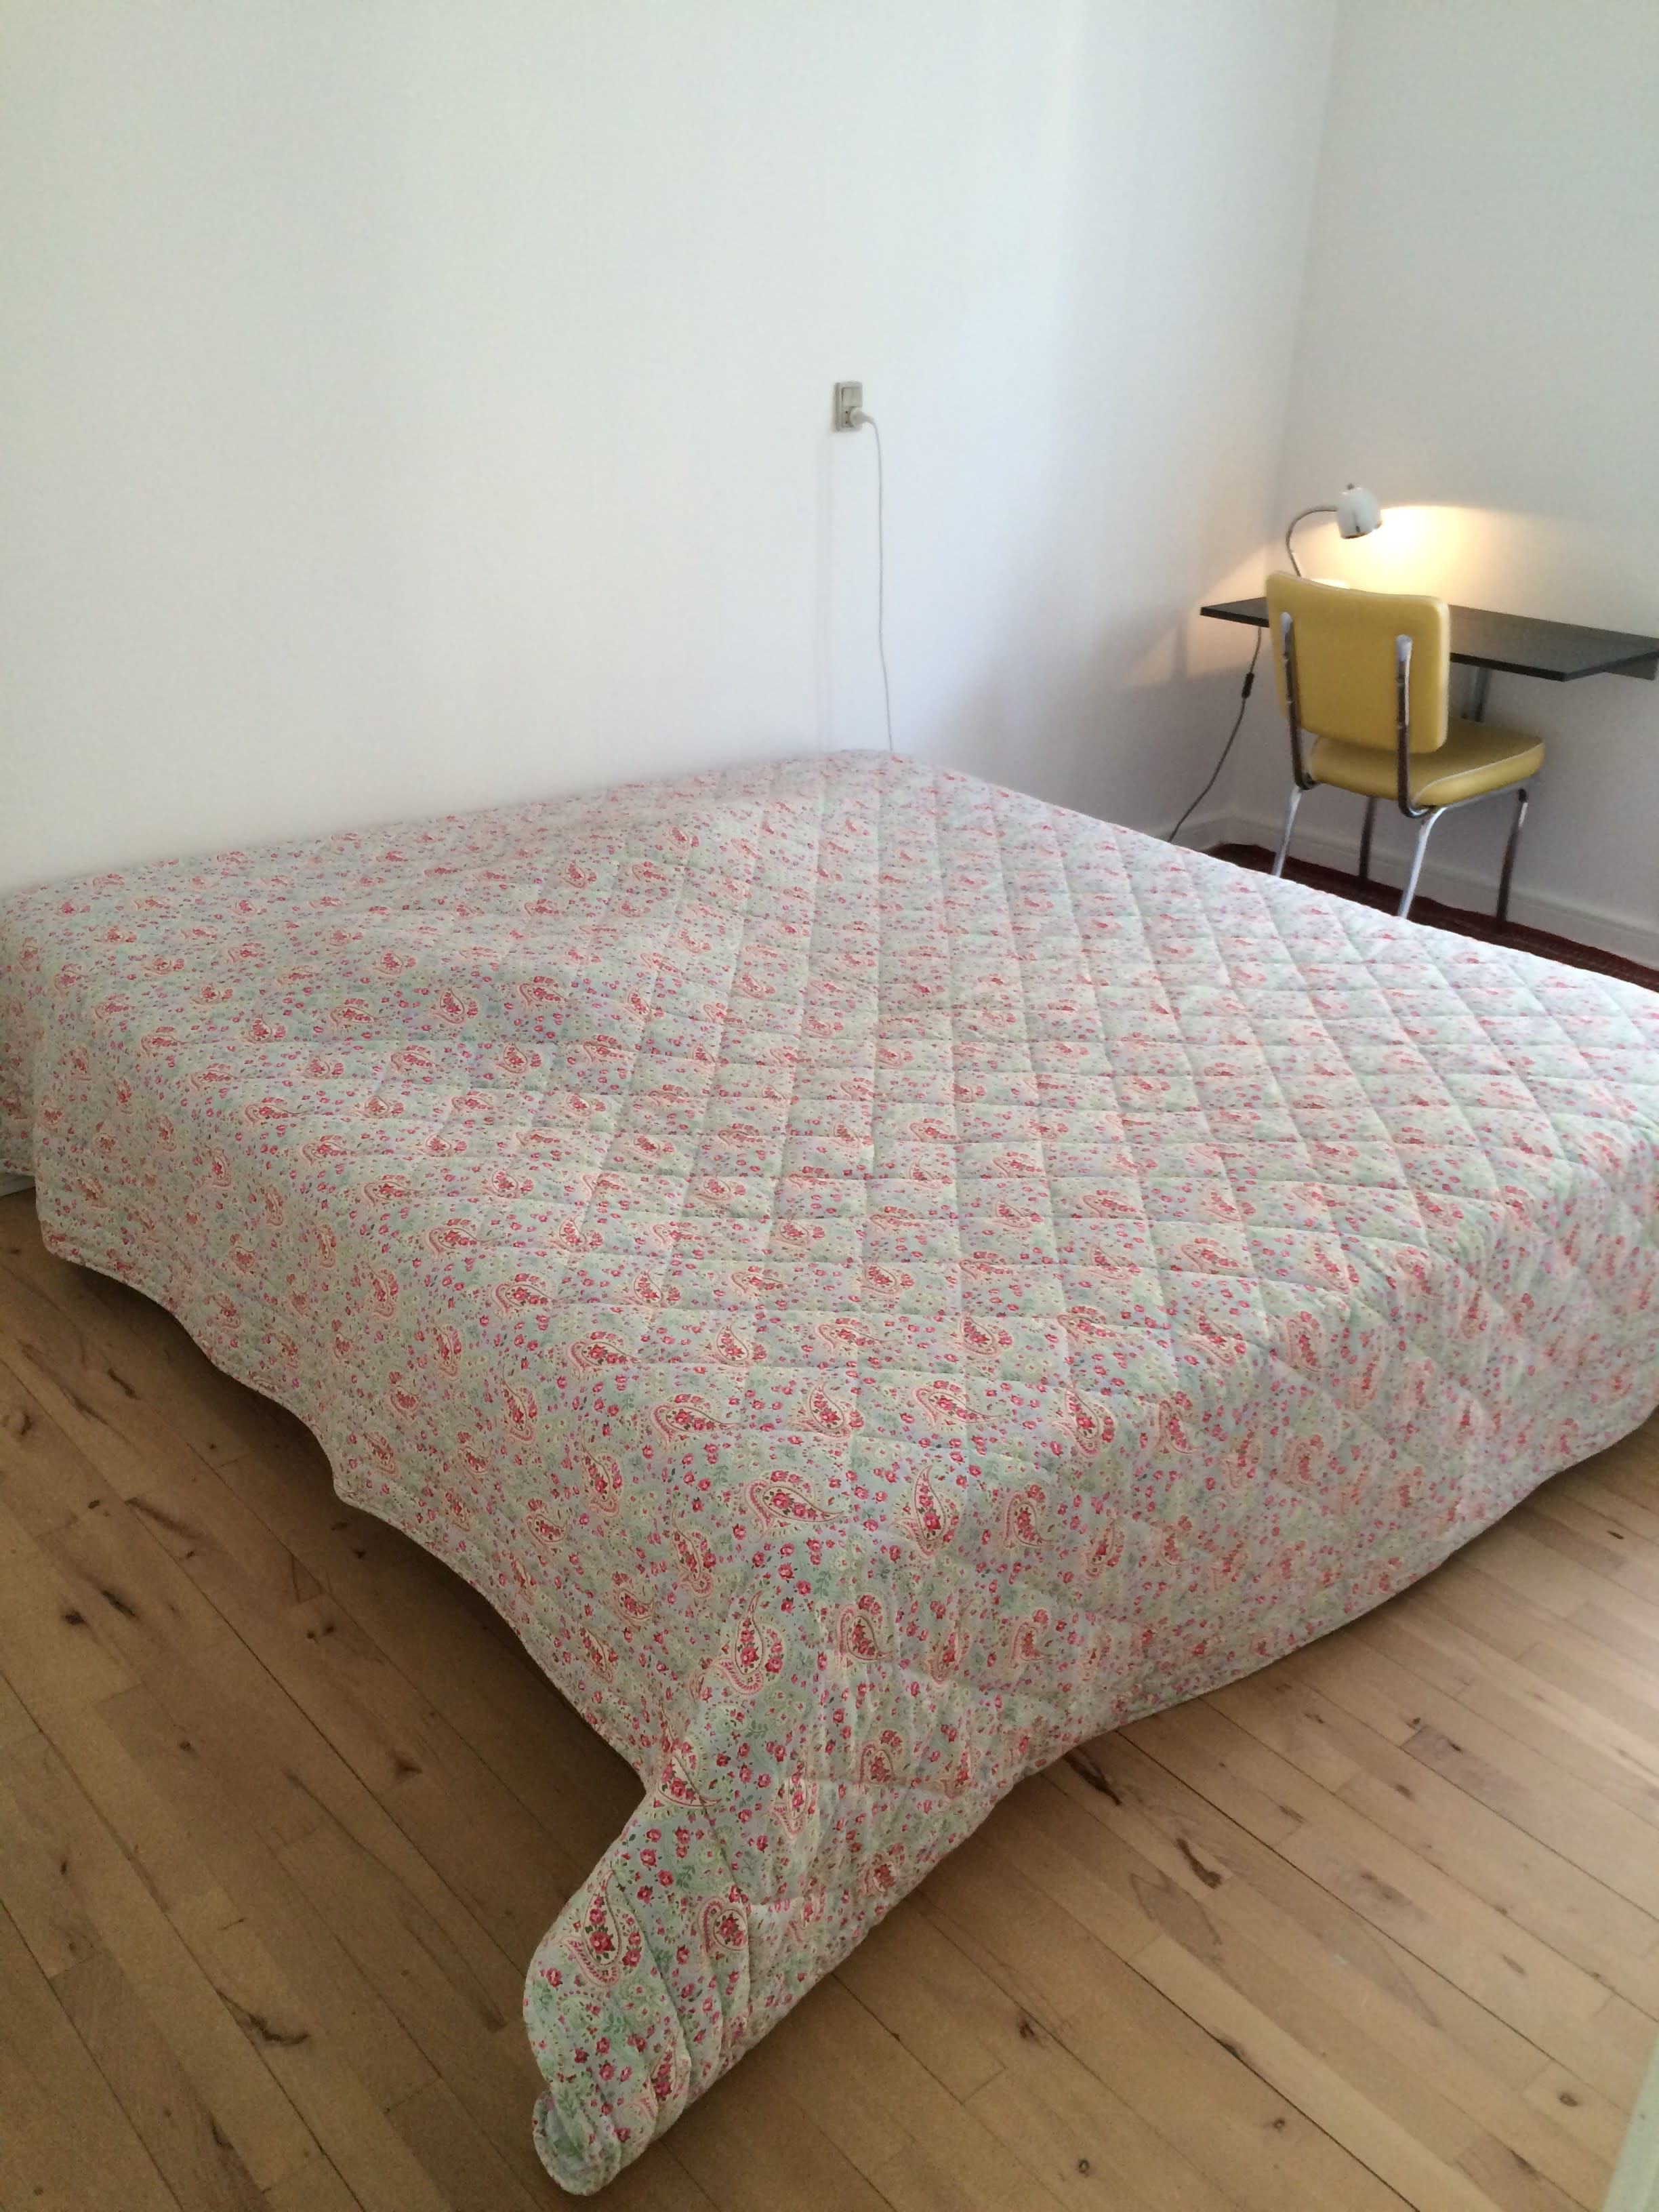 Room available in a shared flat in Oesterbro.